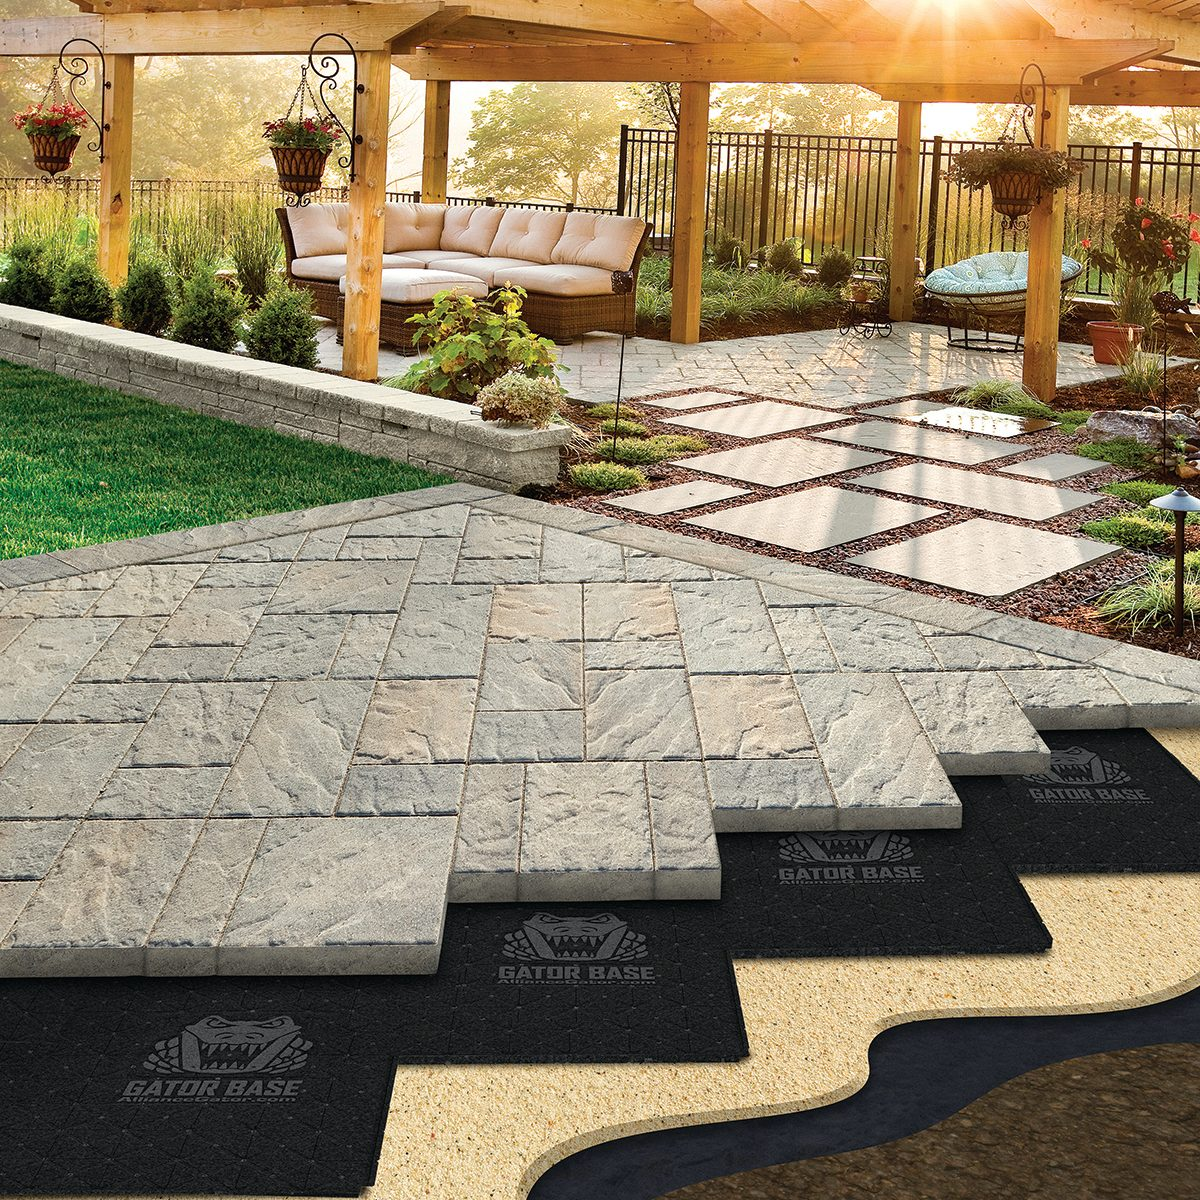 Easier Paver Patio Base That Will Save Your Back Diy Family Handyman